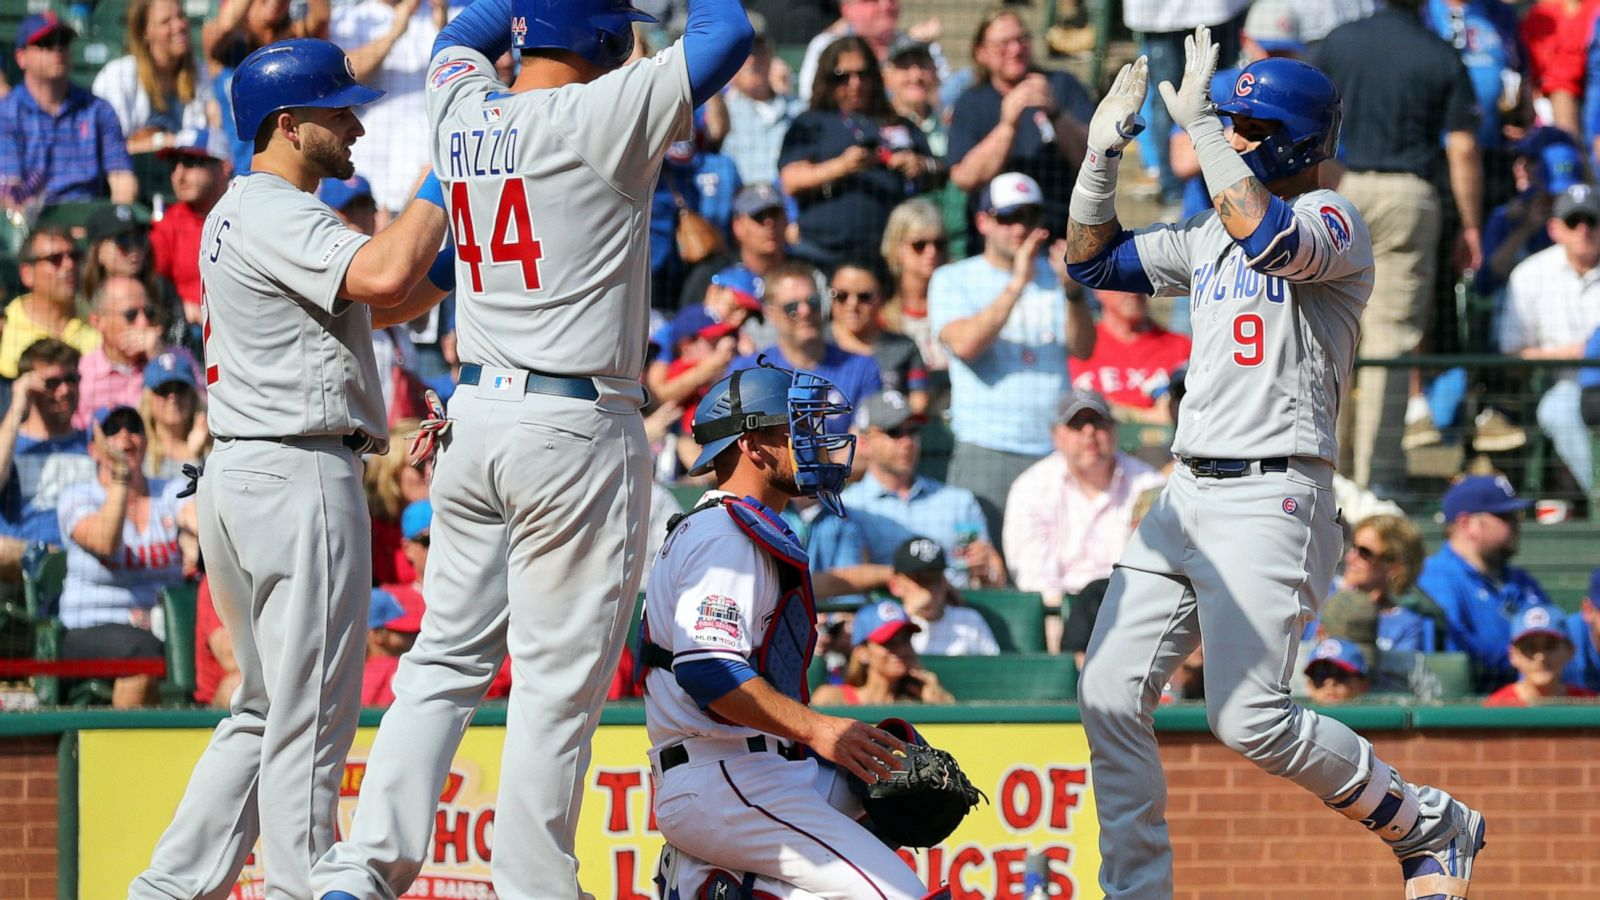 Baez Hits 2 Hrs As Cubs Open Season With 12 4 Win At Rangers